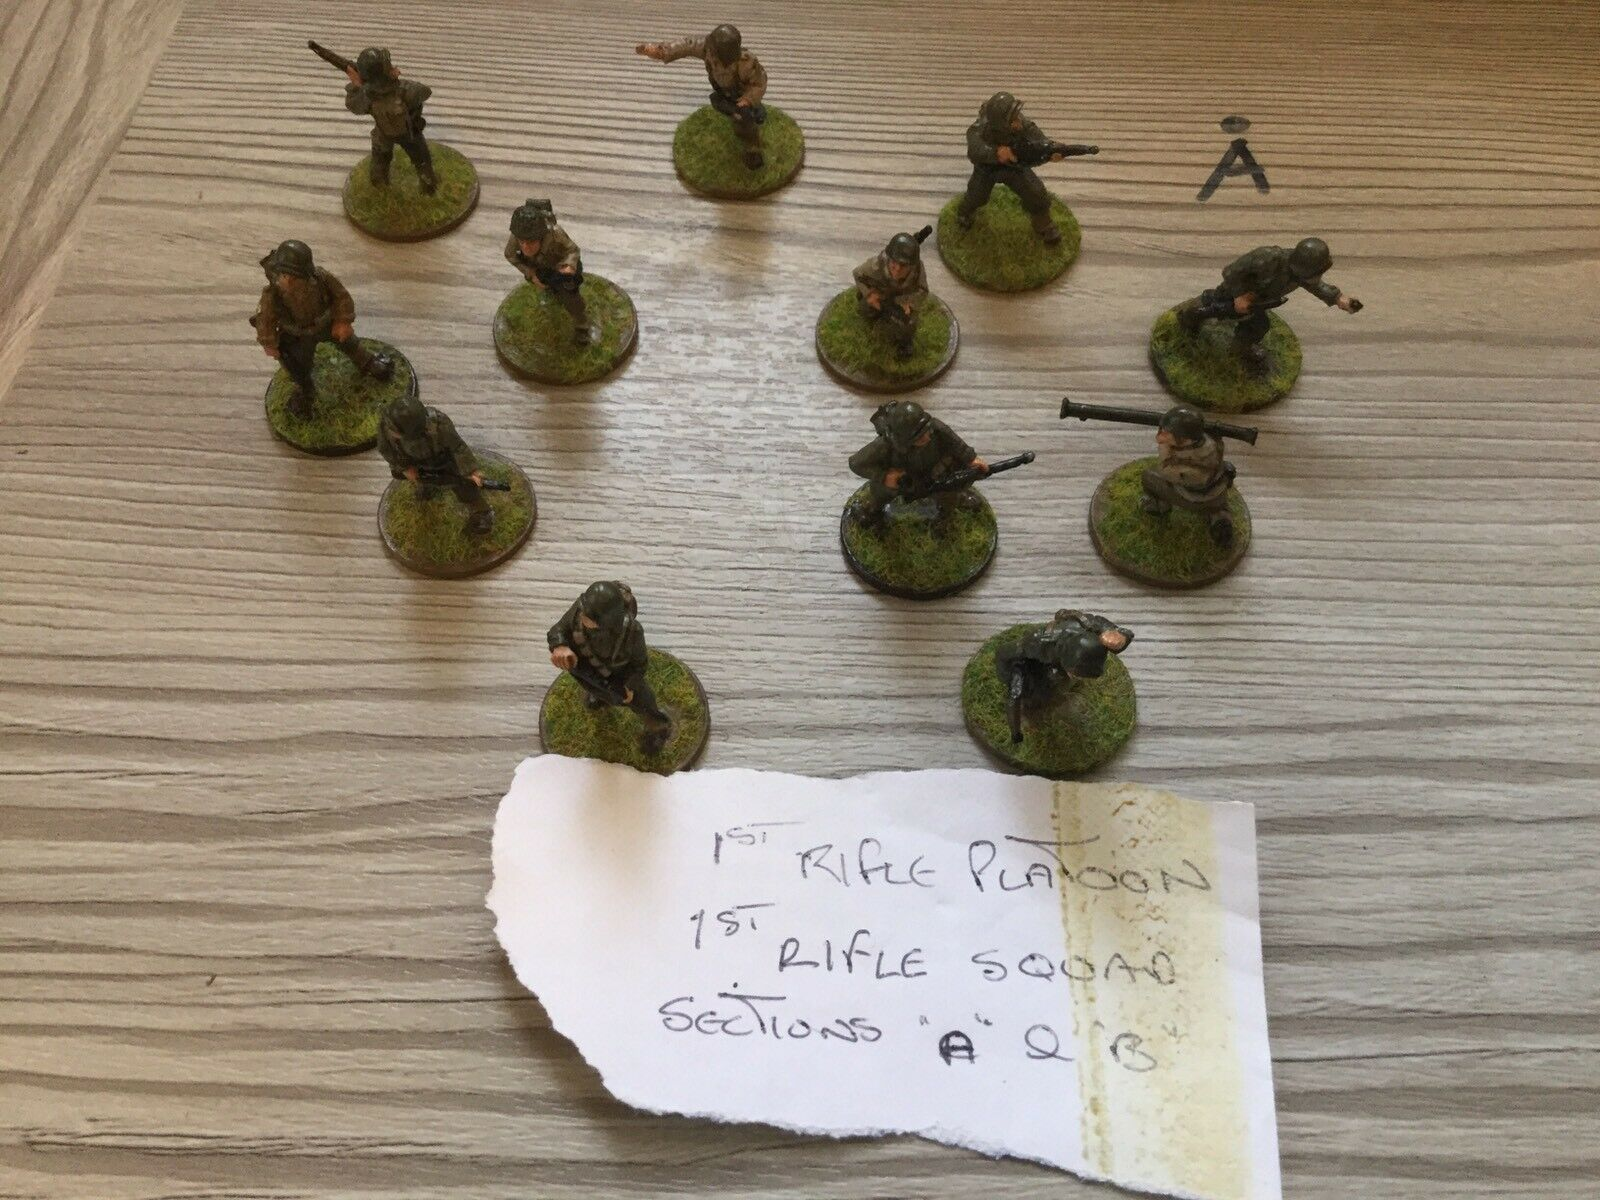 12 Flames Of War Figurines And Book 1st Rifle Squad , 1st Rifle Platoon